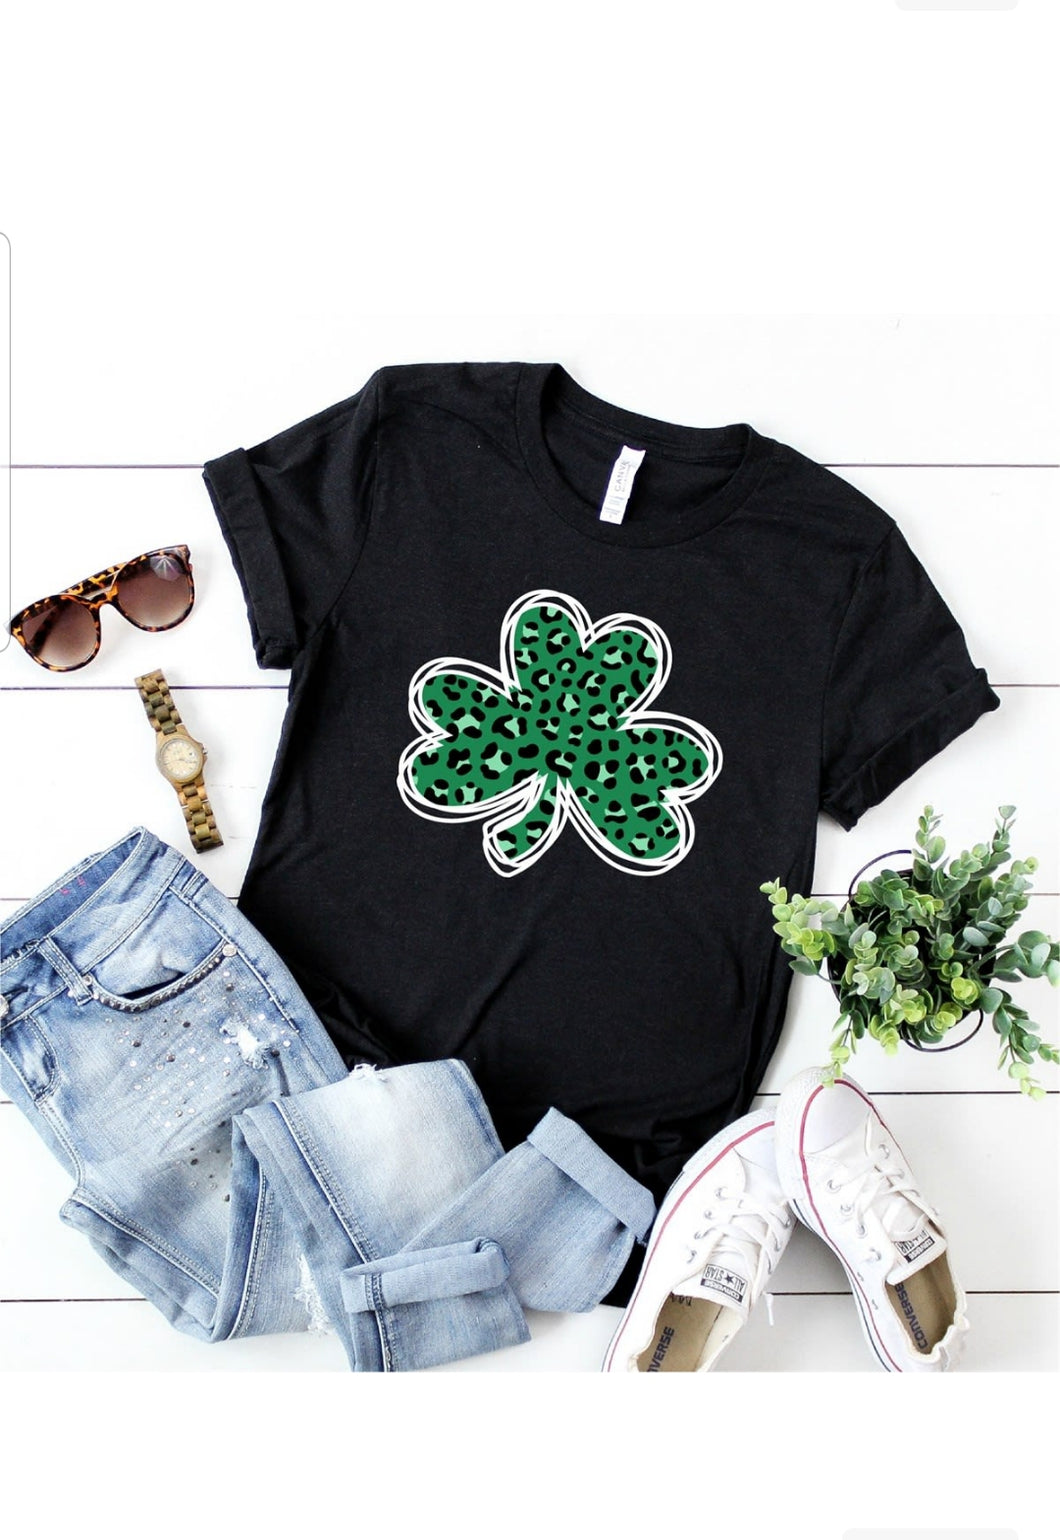 Green Leopard Print Clover St. Patrick's Day Shirt, Choose Shirt Color - The Hot Polka Dot